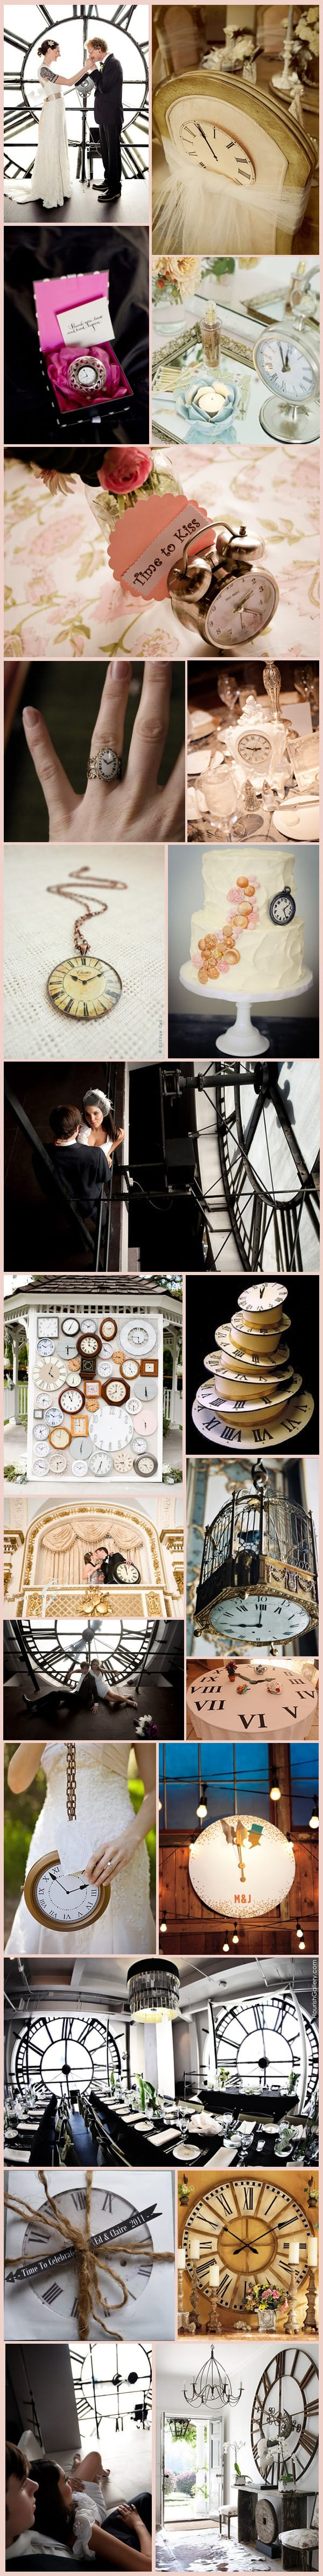 Clock Wedding Inspiration Board